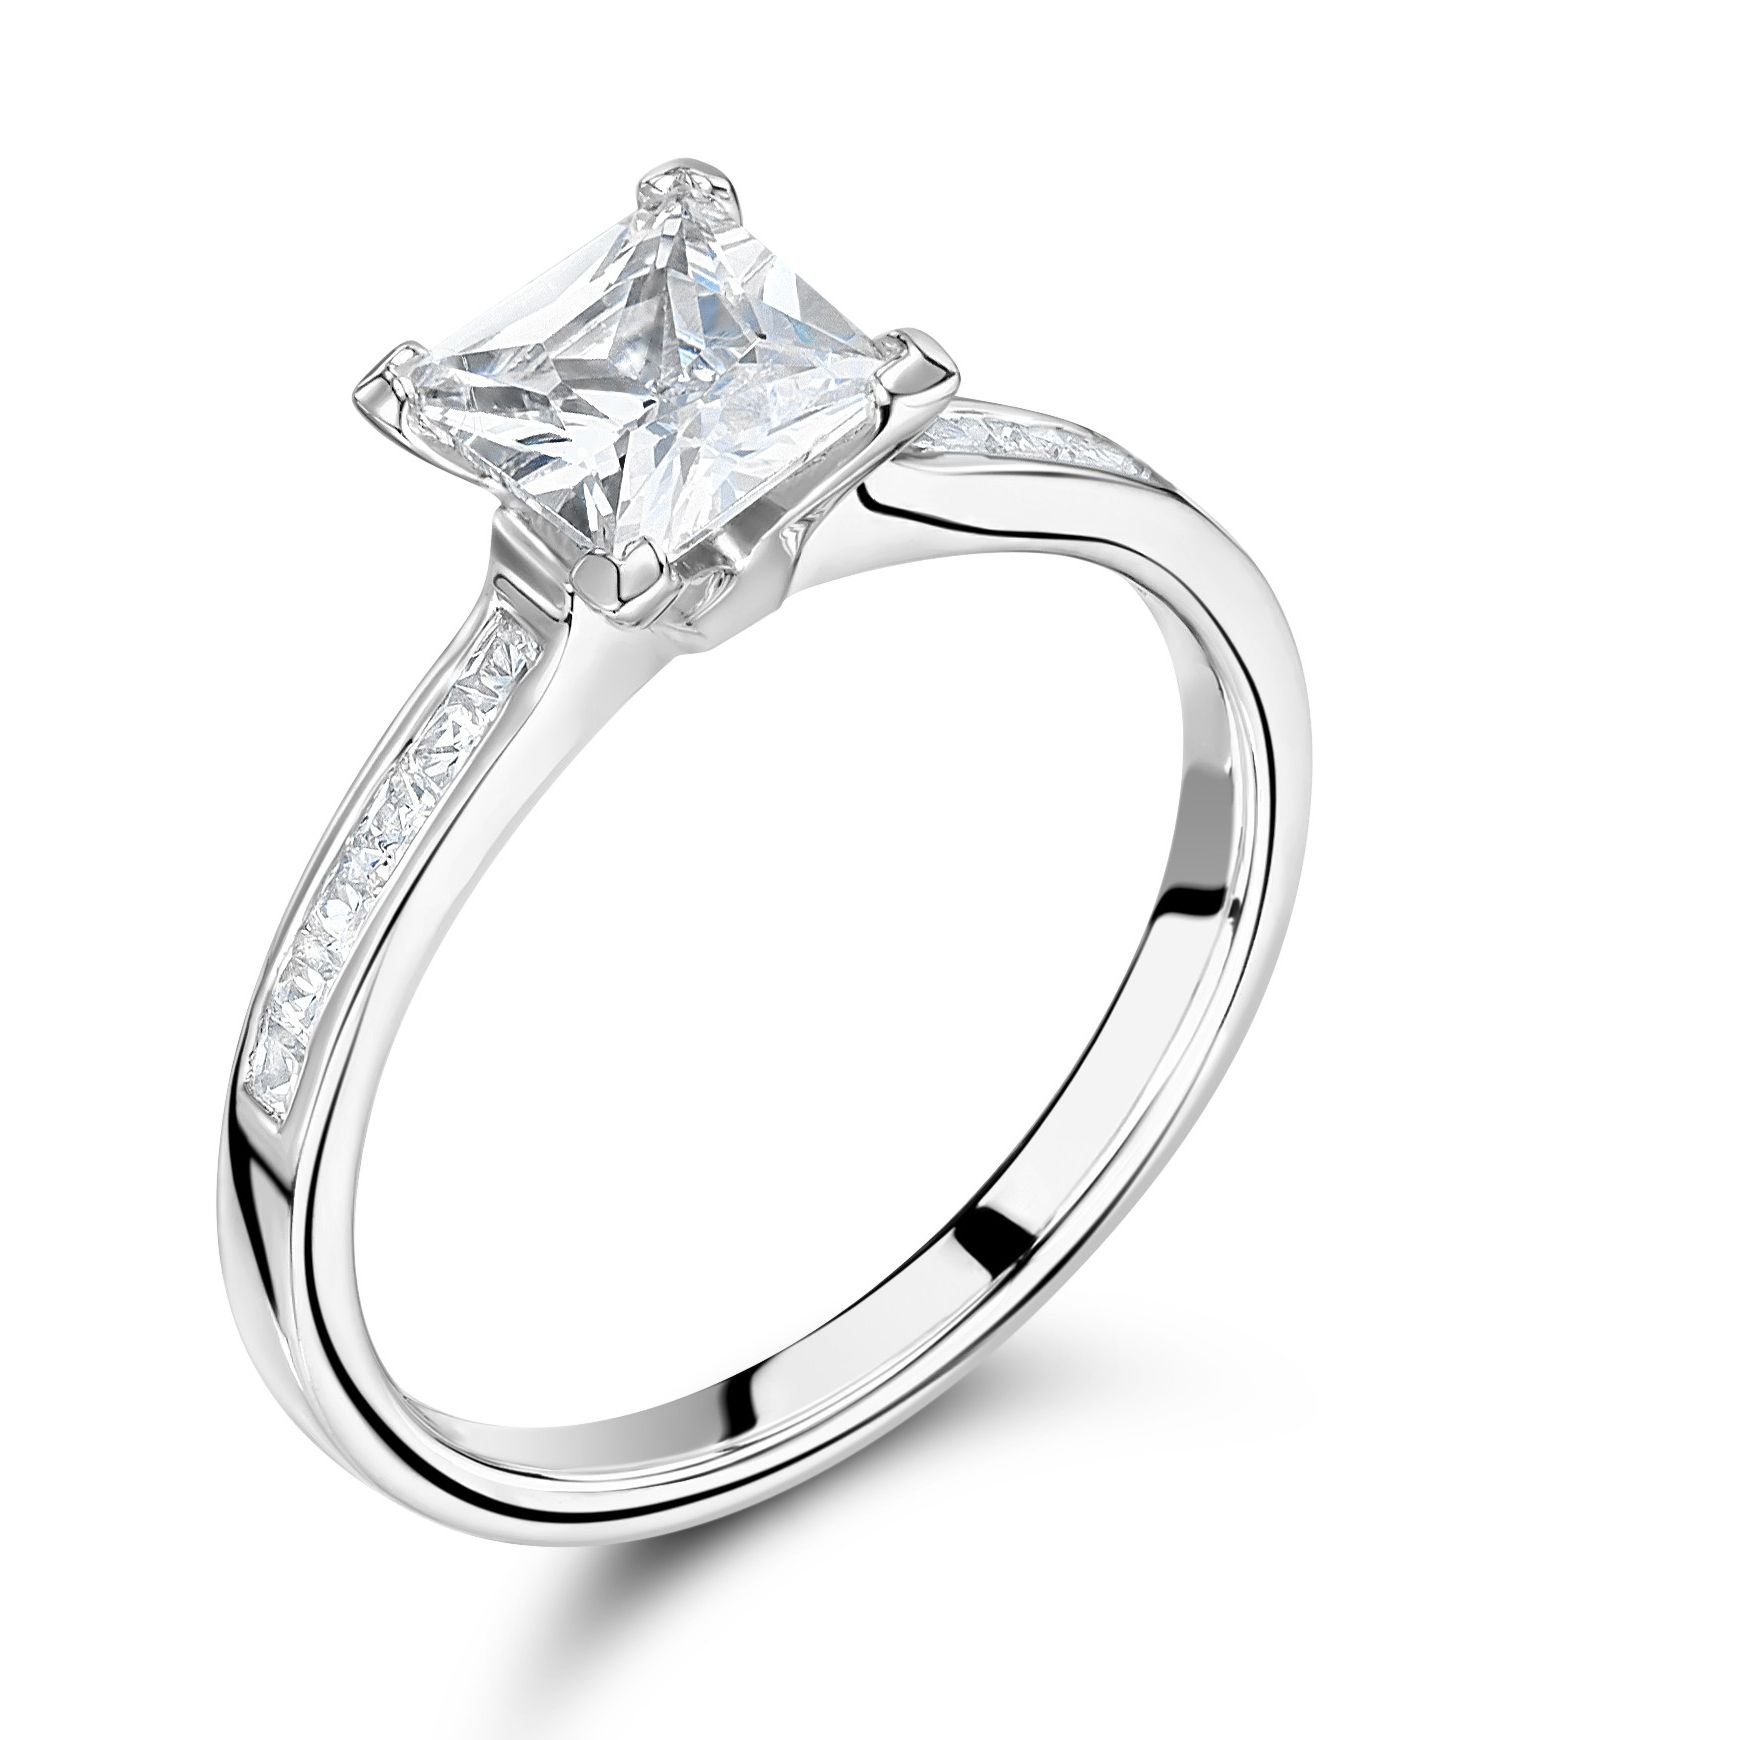 Princess Cut Side Stone On Shoulder Set Diamond Engagement Ring In White Gold